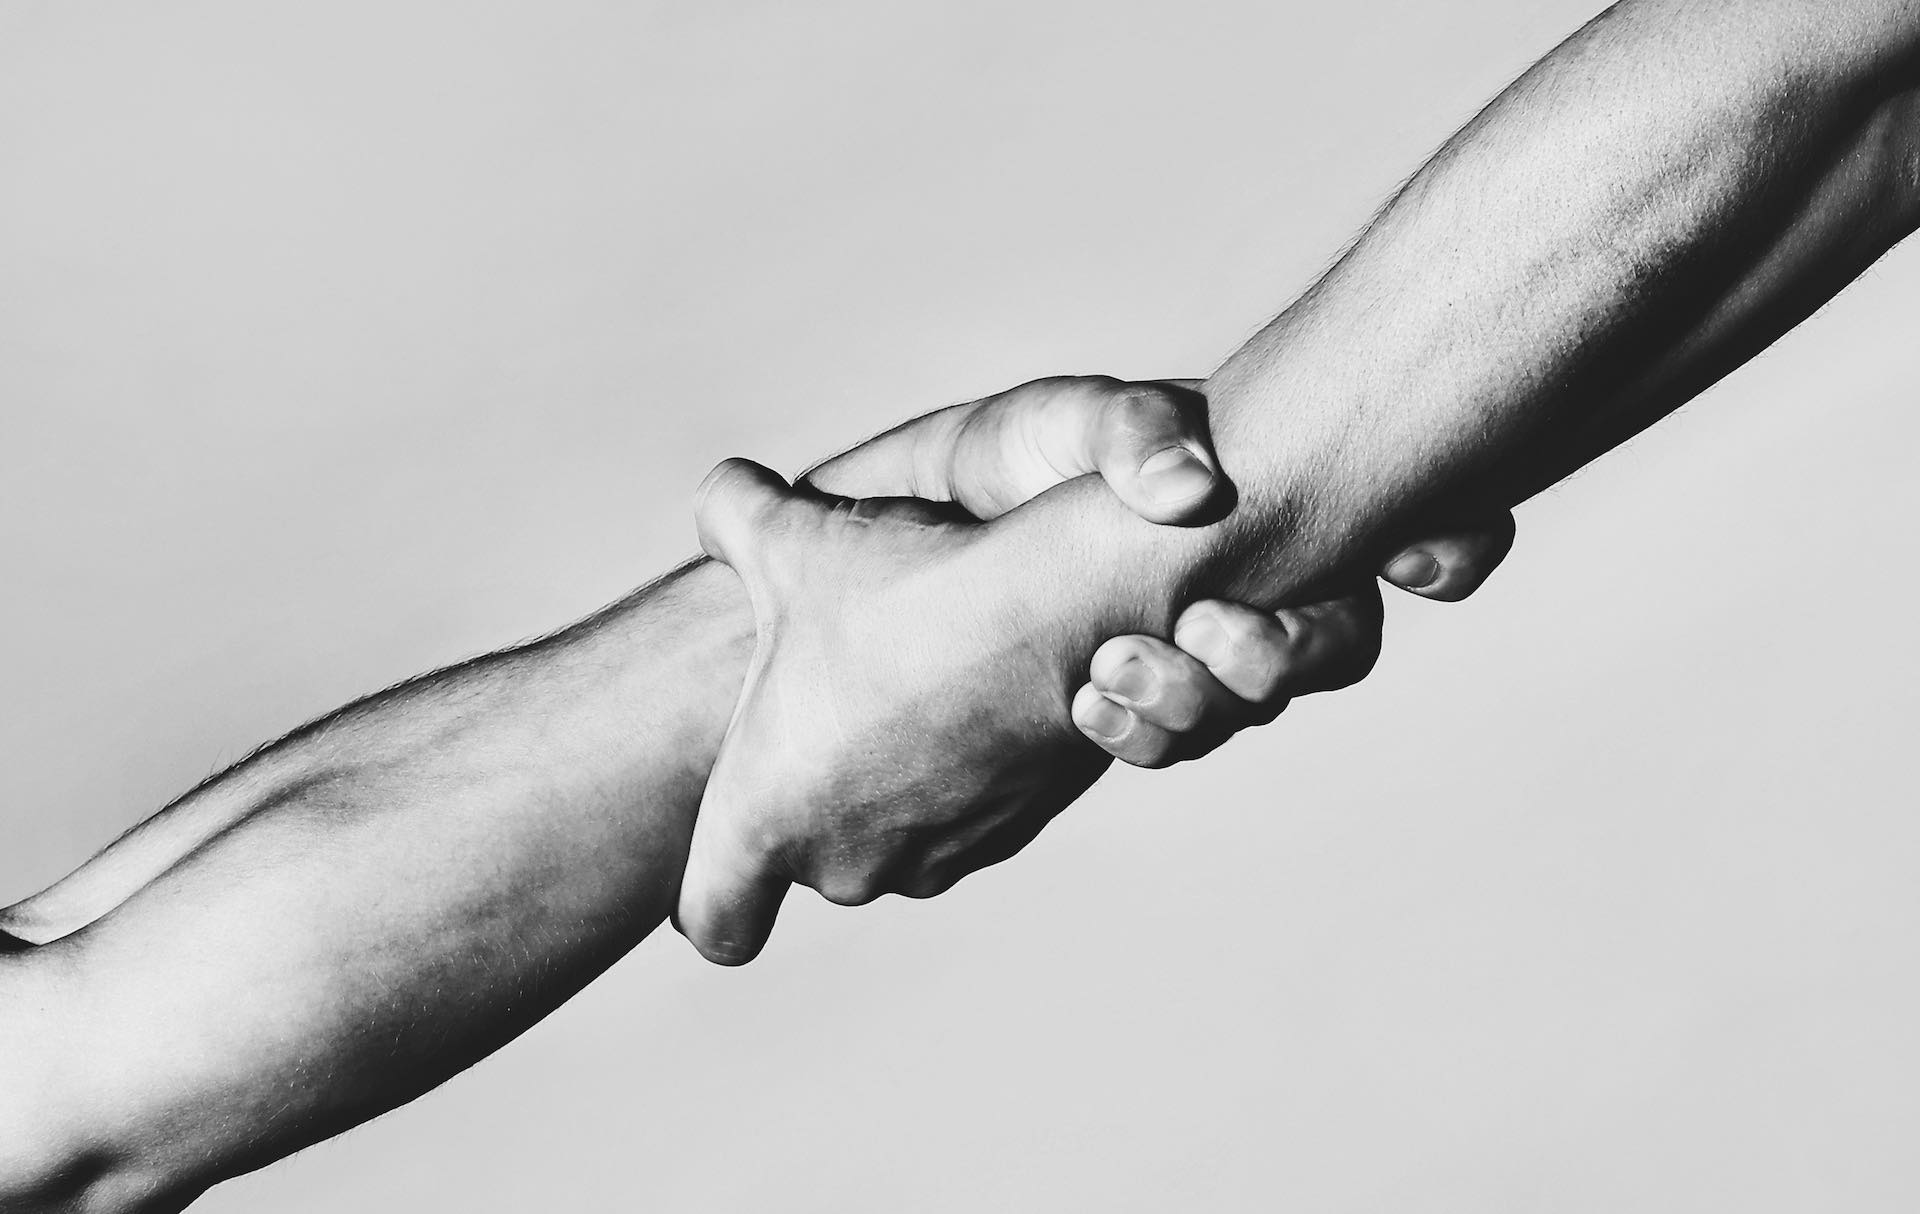 Two hands, helping hand of a friend. Handshake, arms, friendship. Friendly handshake, friends greeting, teamwork, friendship. Rescue, helping gesture or hands. Strong hold. Close-up. Black and white